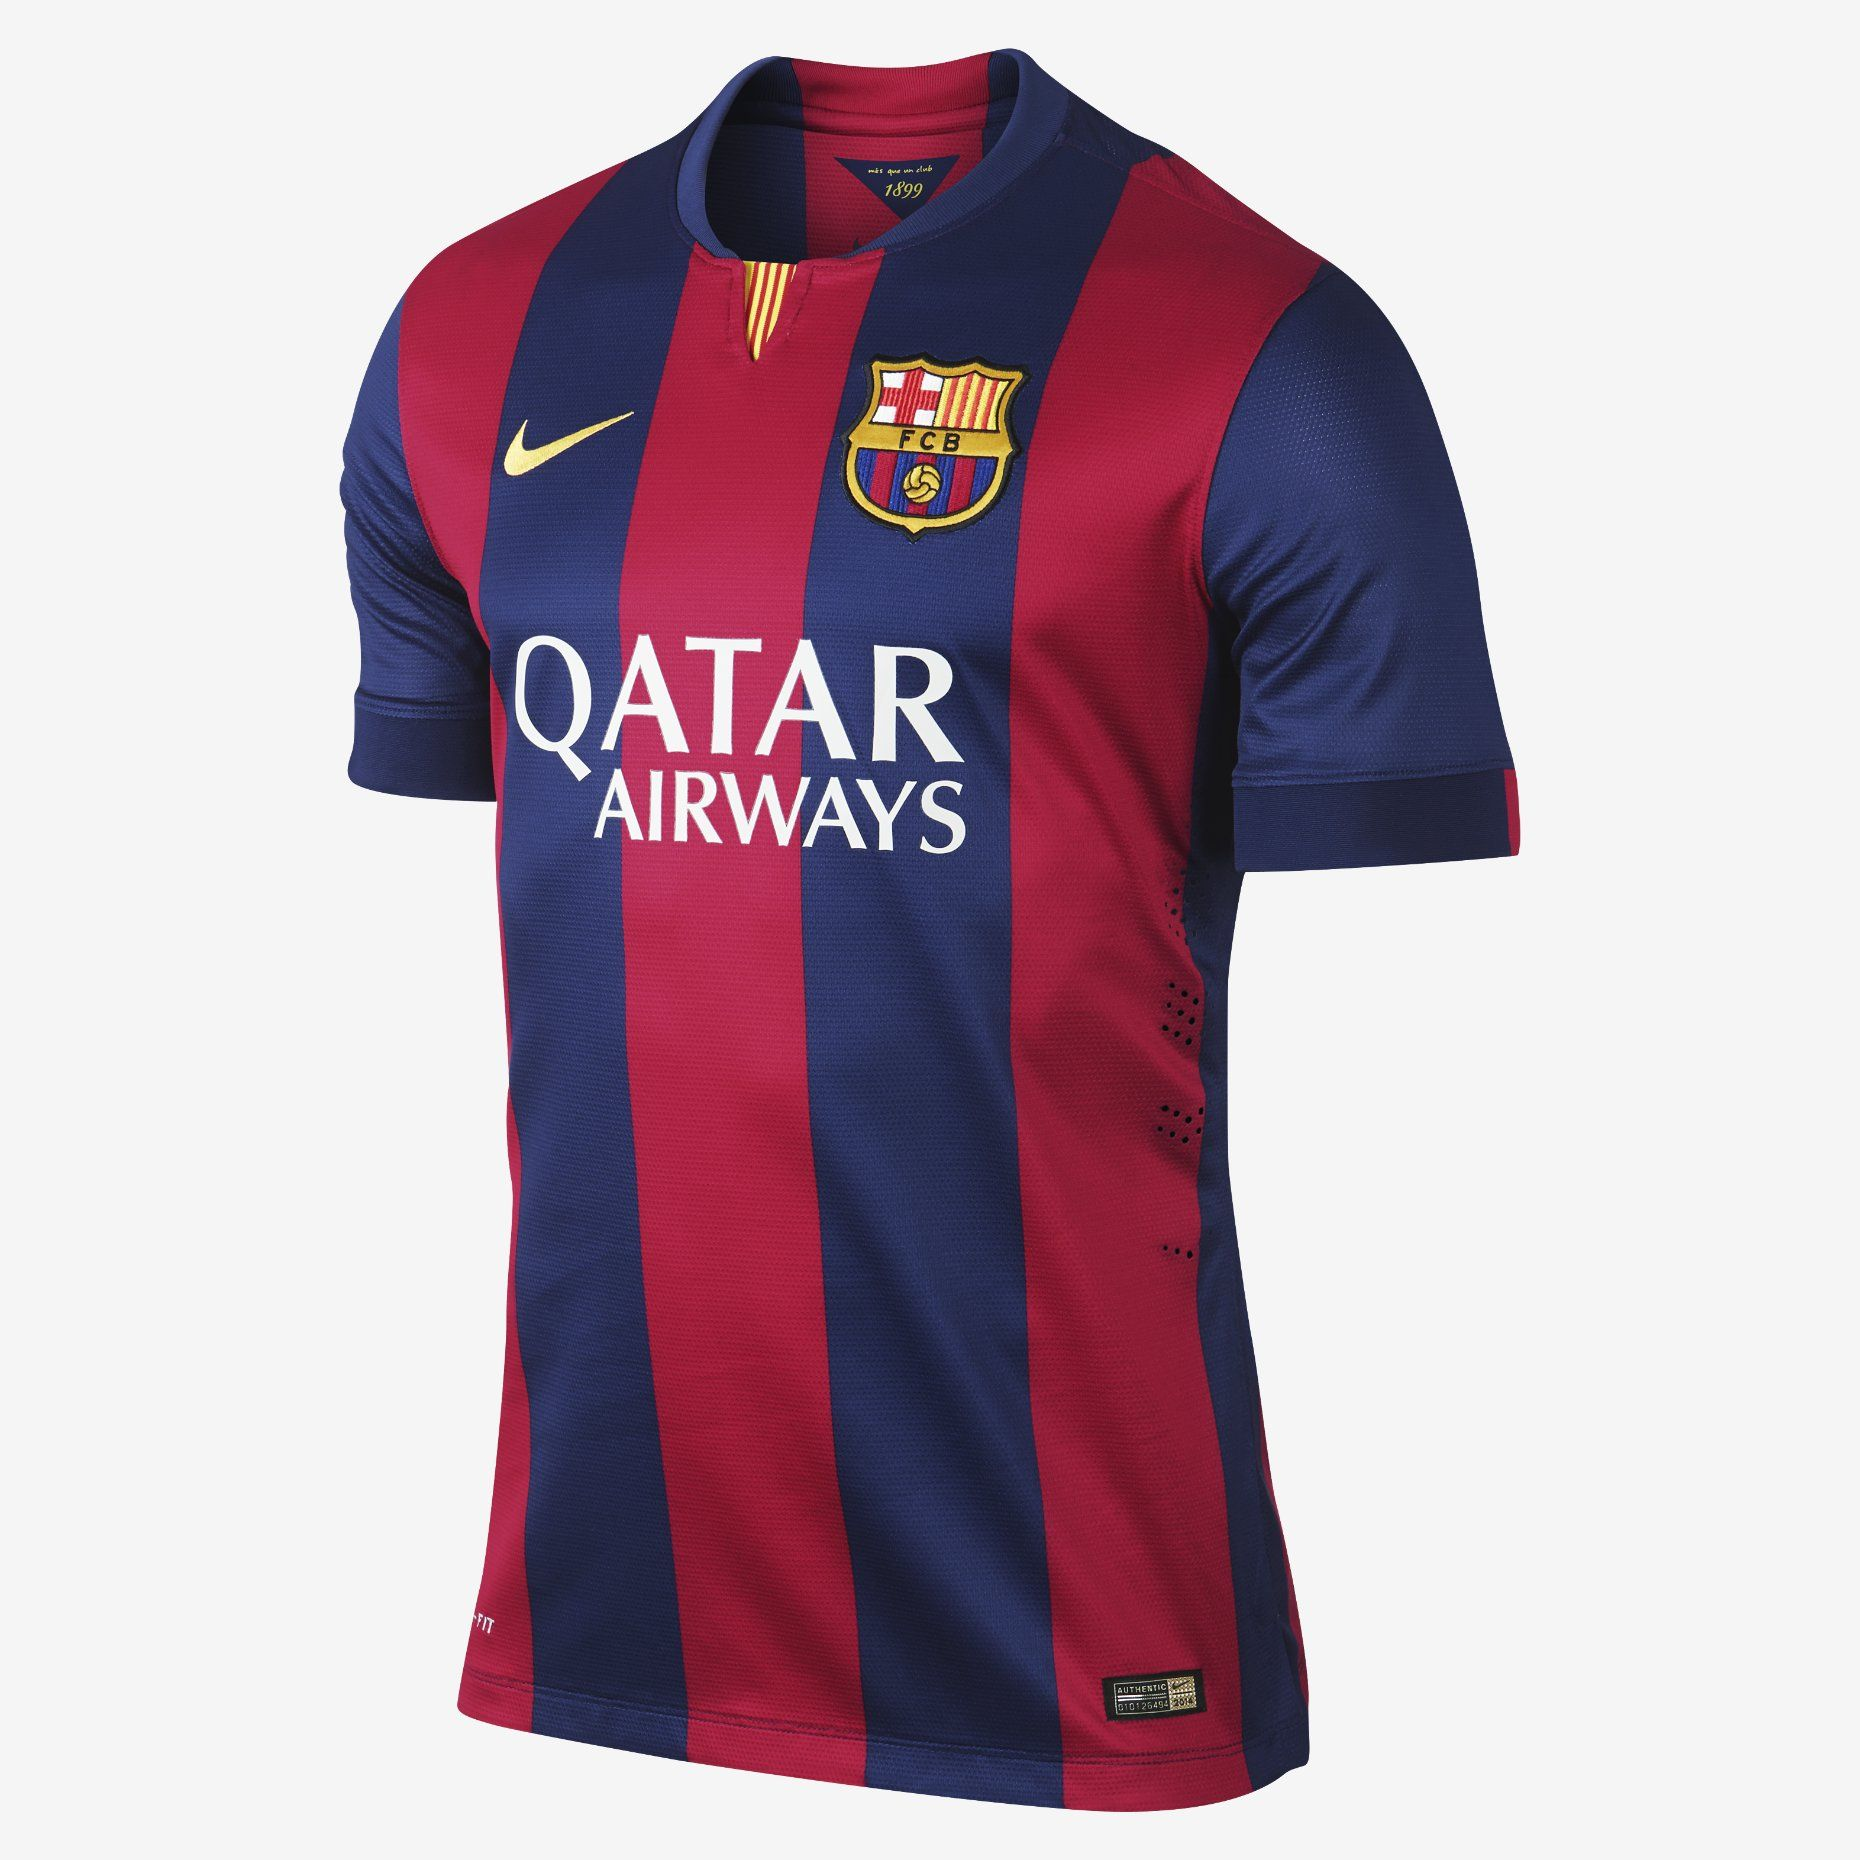 42021e8d2f8 Pin by Ricardo Carvalho on Soccer Jerseys | Barcelona soccer, Soccer ...